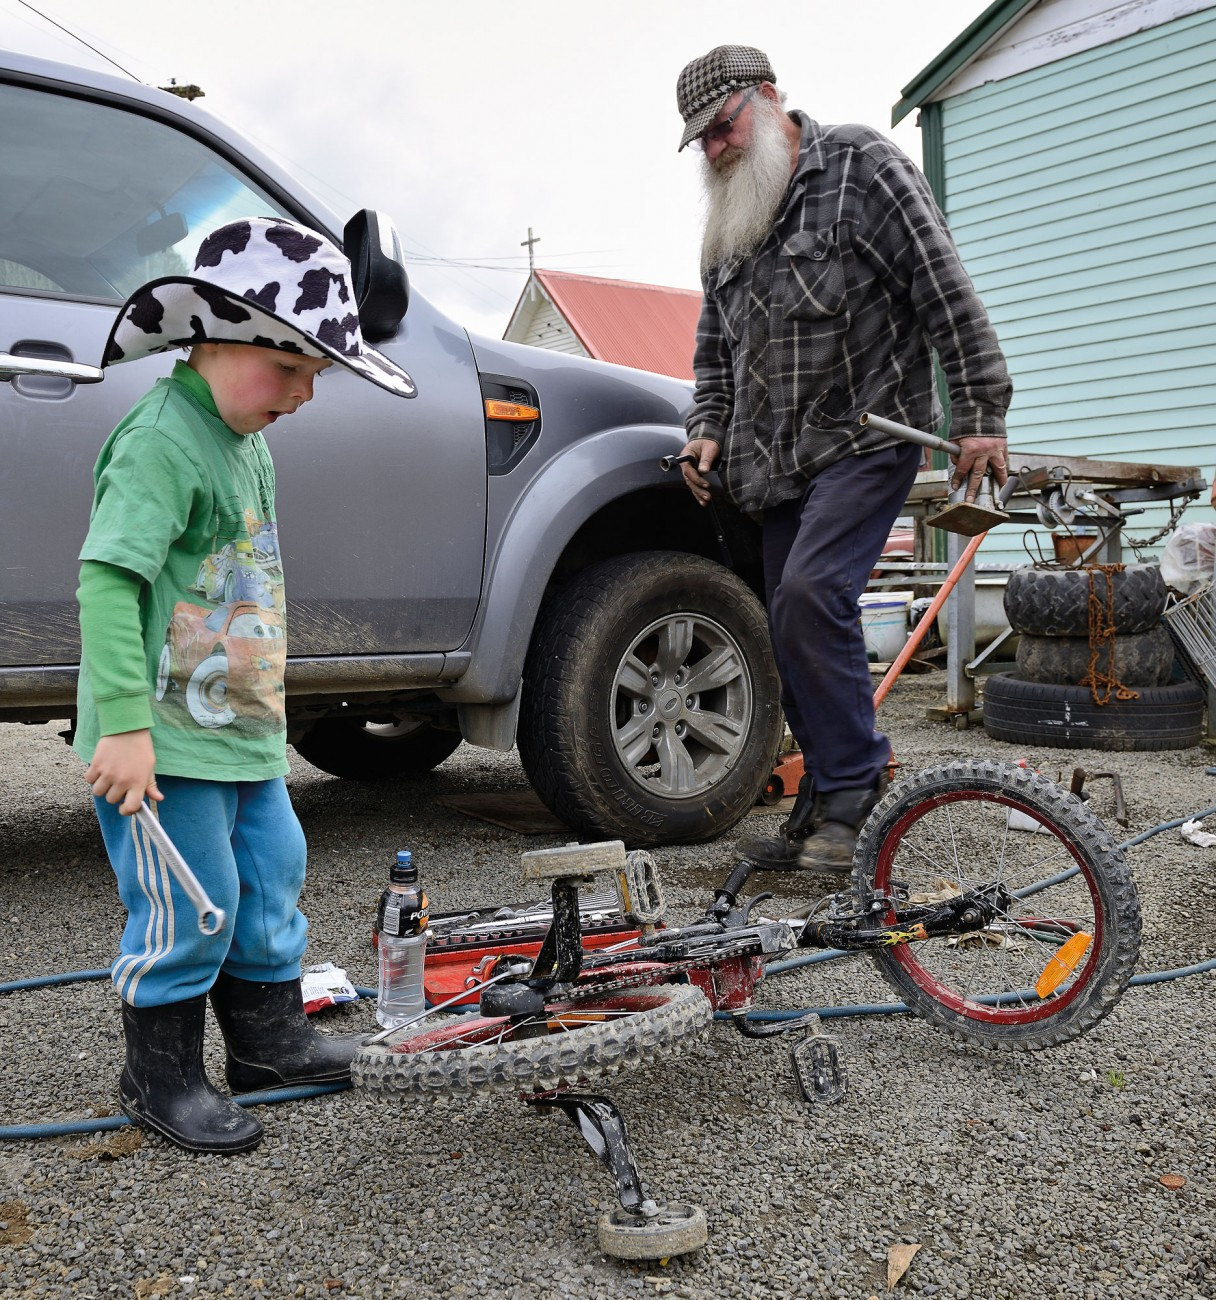 The current president of the Republic of Whangamomona, Murt Kennard, operates the only garage on the Forgotten World Highway. He fixes anything that breaks in the district, including the wheel bearings of this truck. His four-year-old neighbour, Gus Hutchinson, uses the opportunity to effect some repairs on his vehicle too.